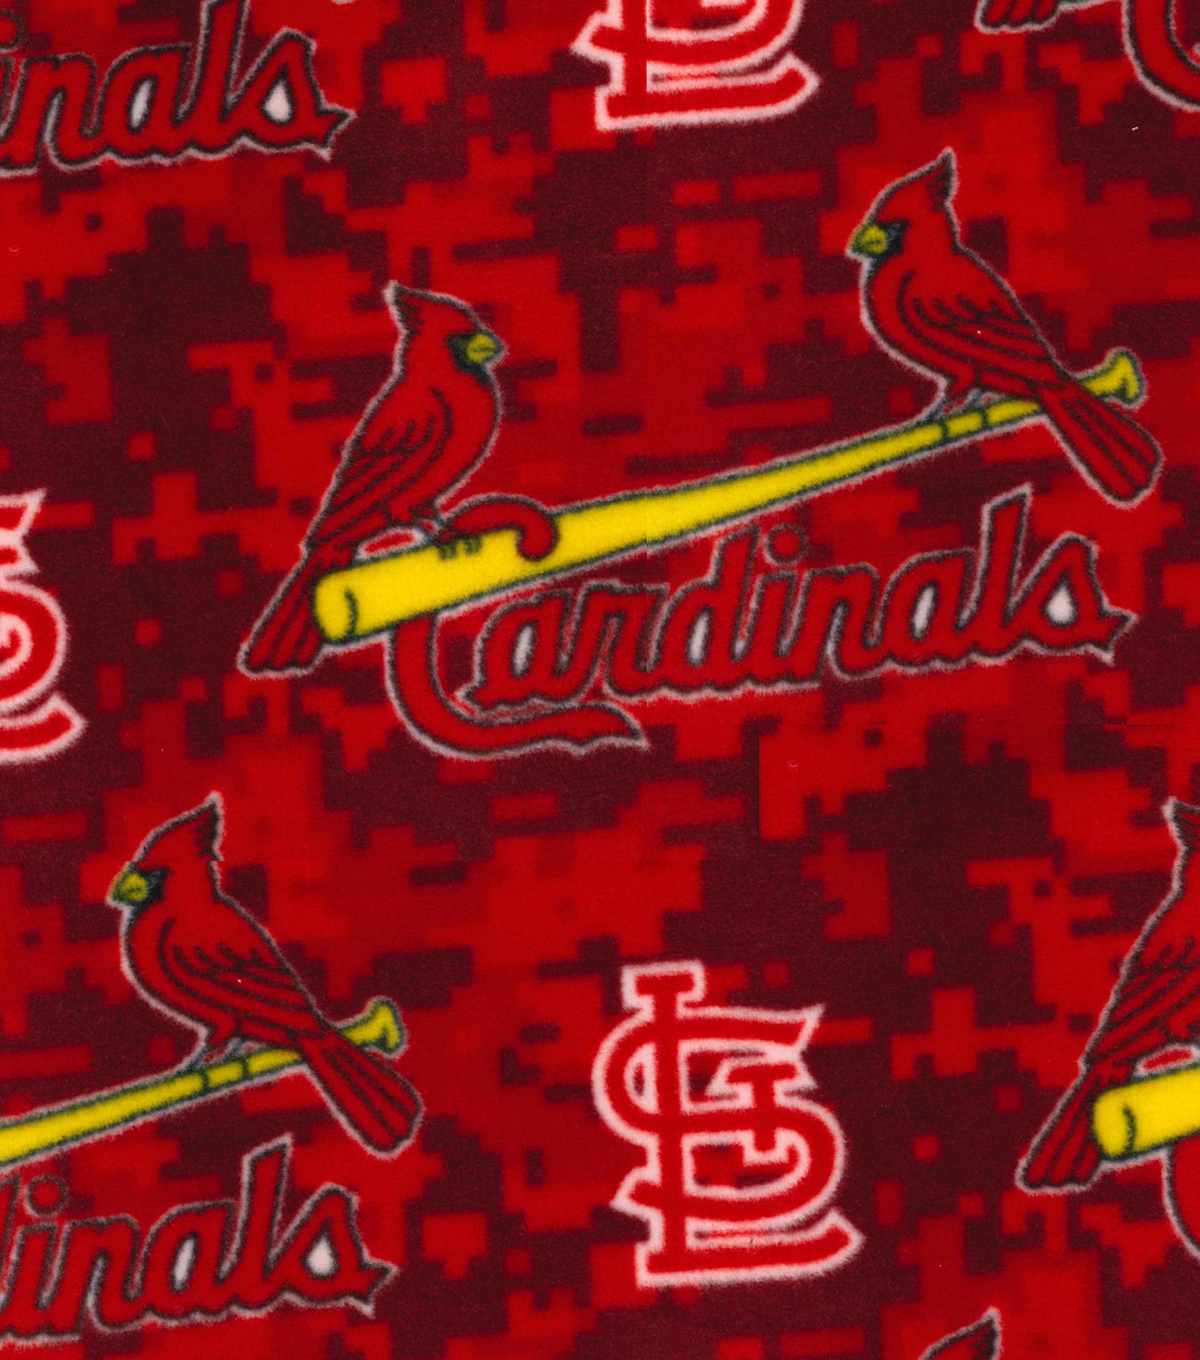 St. Louis Cardinals Fleece Fabric -Digital